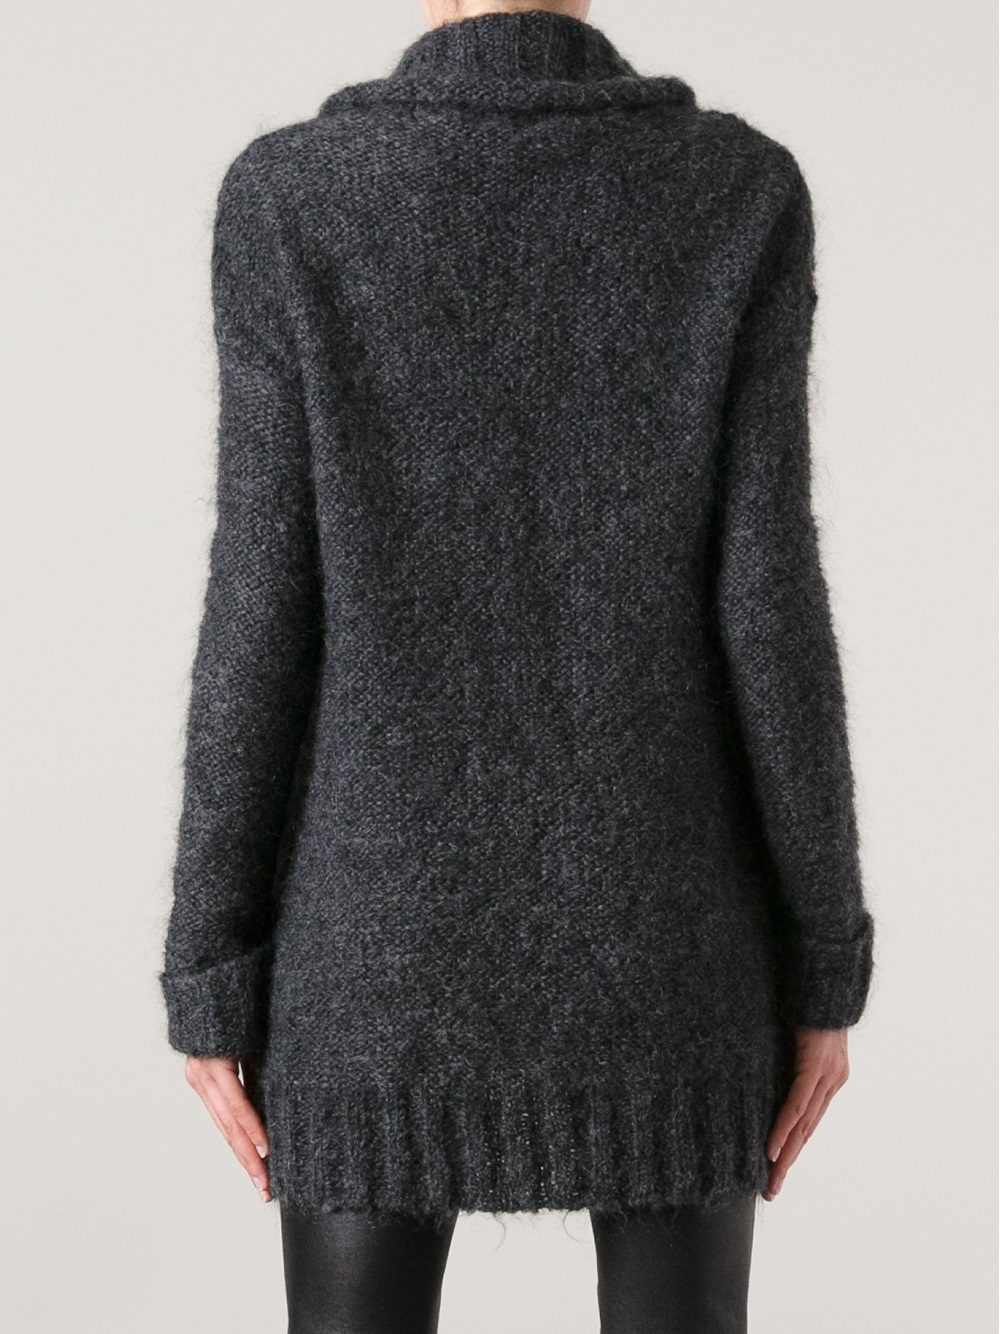 lyst patrizia pepe roll neck sweater in gray. Black Bedroom Furniture Sets. Home Design Ideas